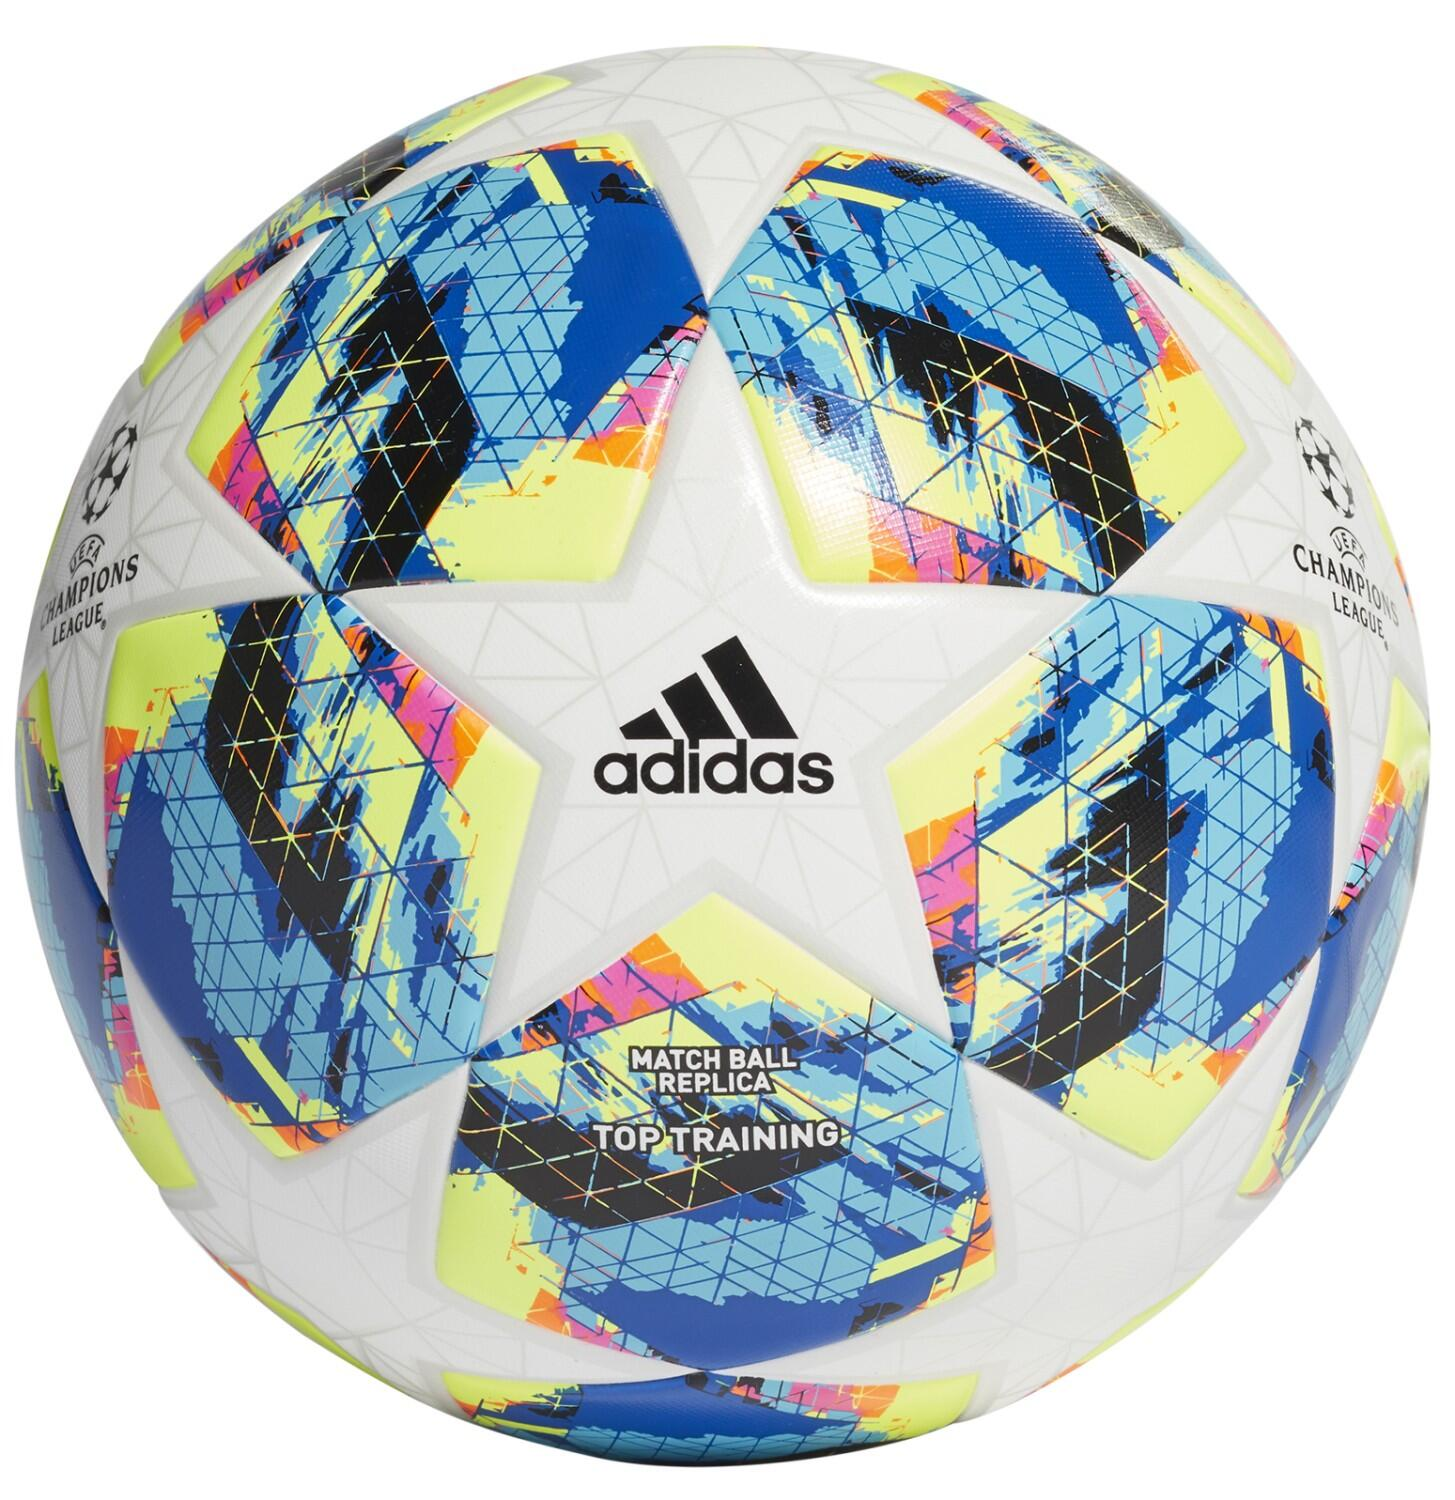 adidas-finale-top-training-fu-szlig-ball-gr-ouml-szlig-e-5-white-bright-cyan-solar-yellow-shock-